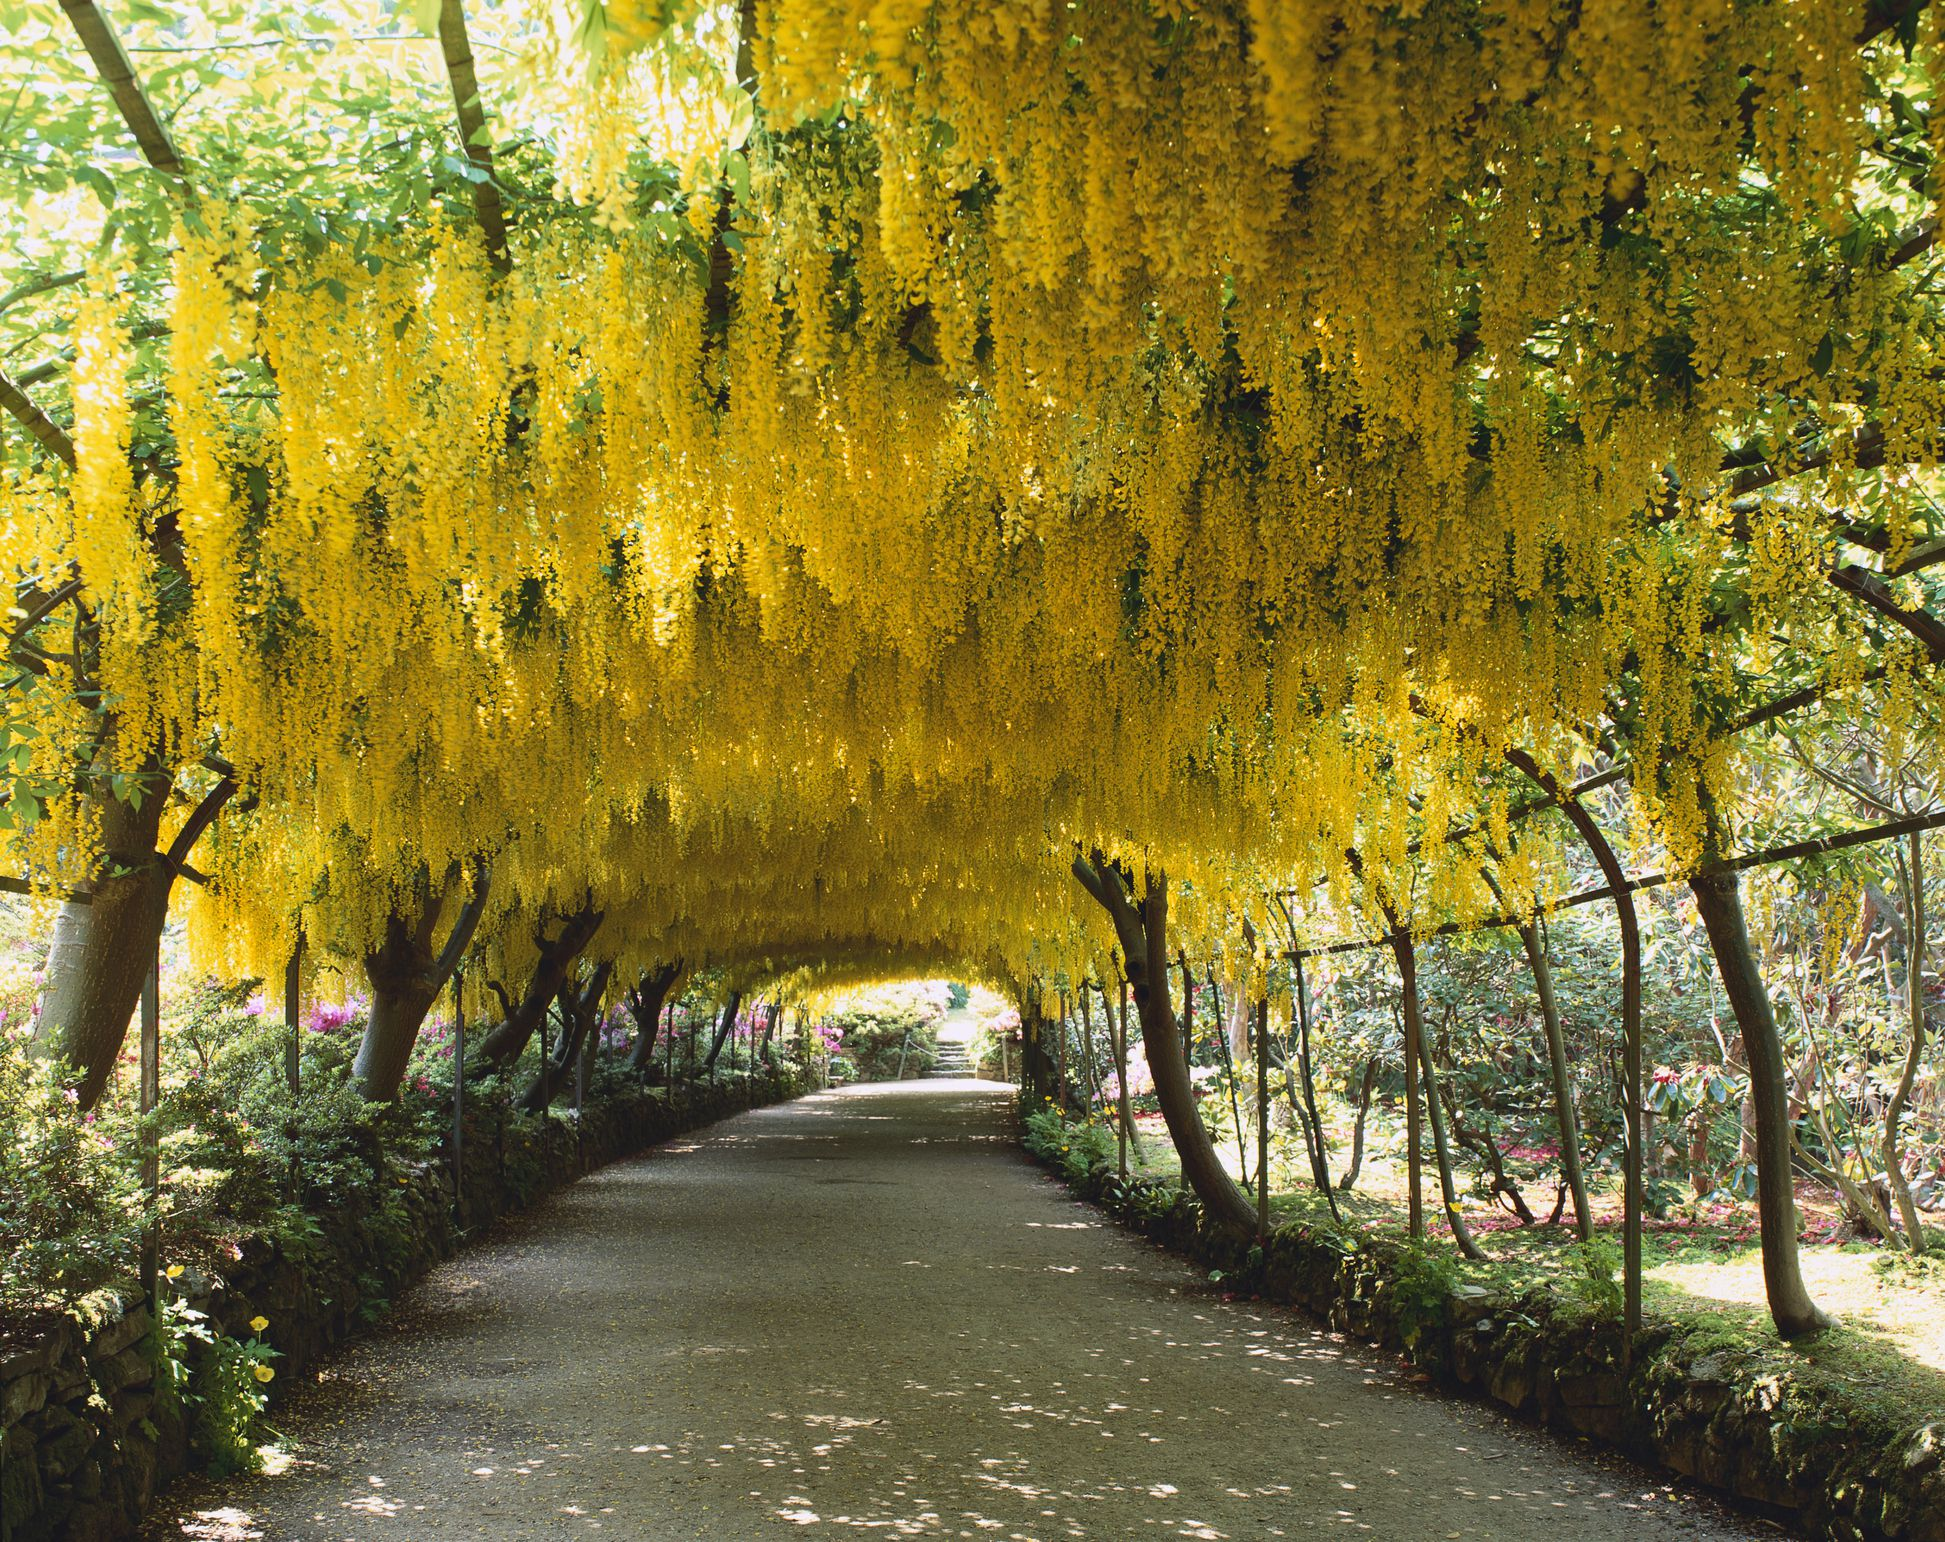 golden chain trees in an archway